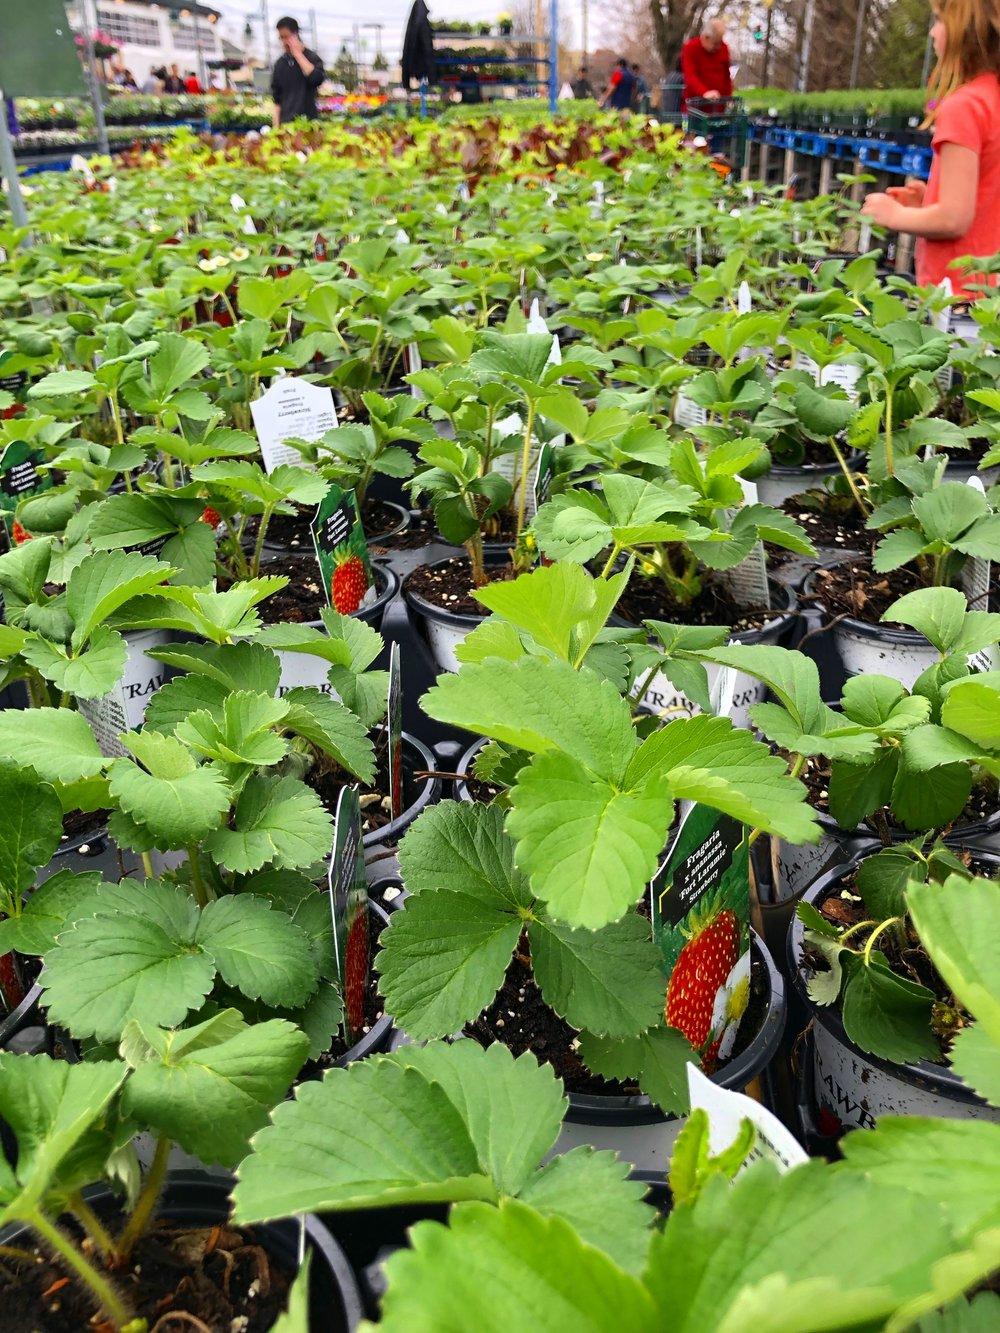 Strawberry plants at Russo's. Did you know New Englanders consume more strawberries than any other region in the country? #tonystips